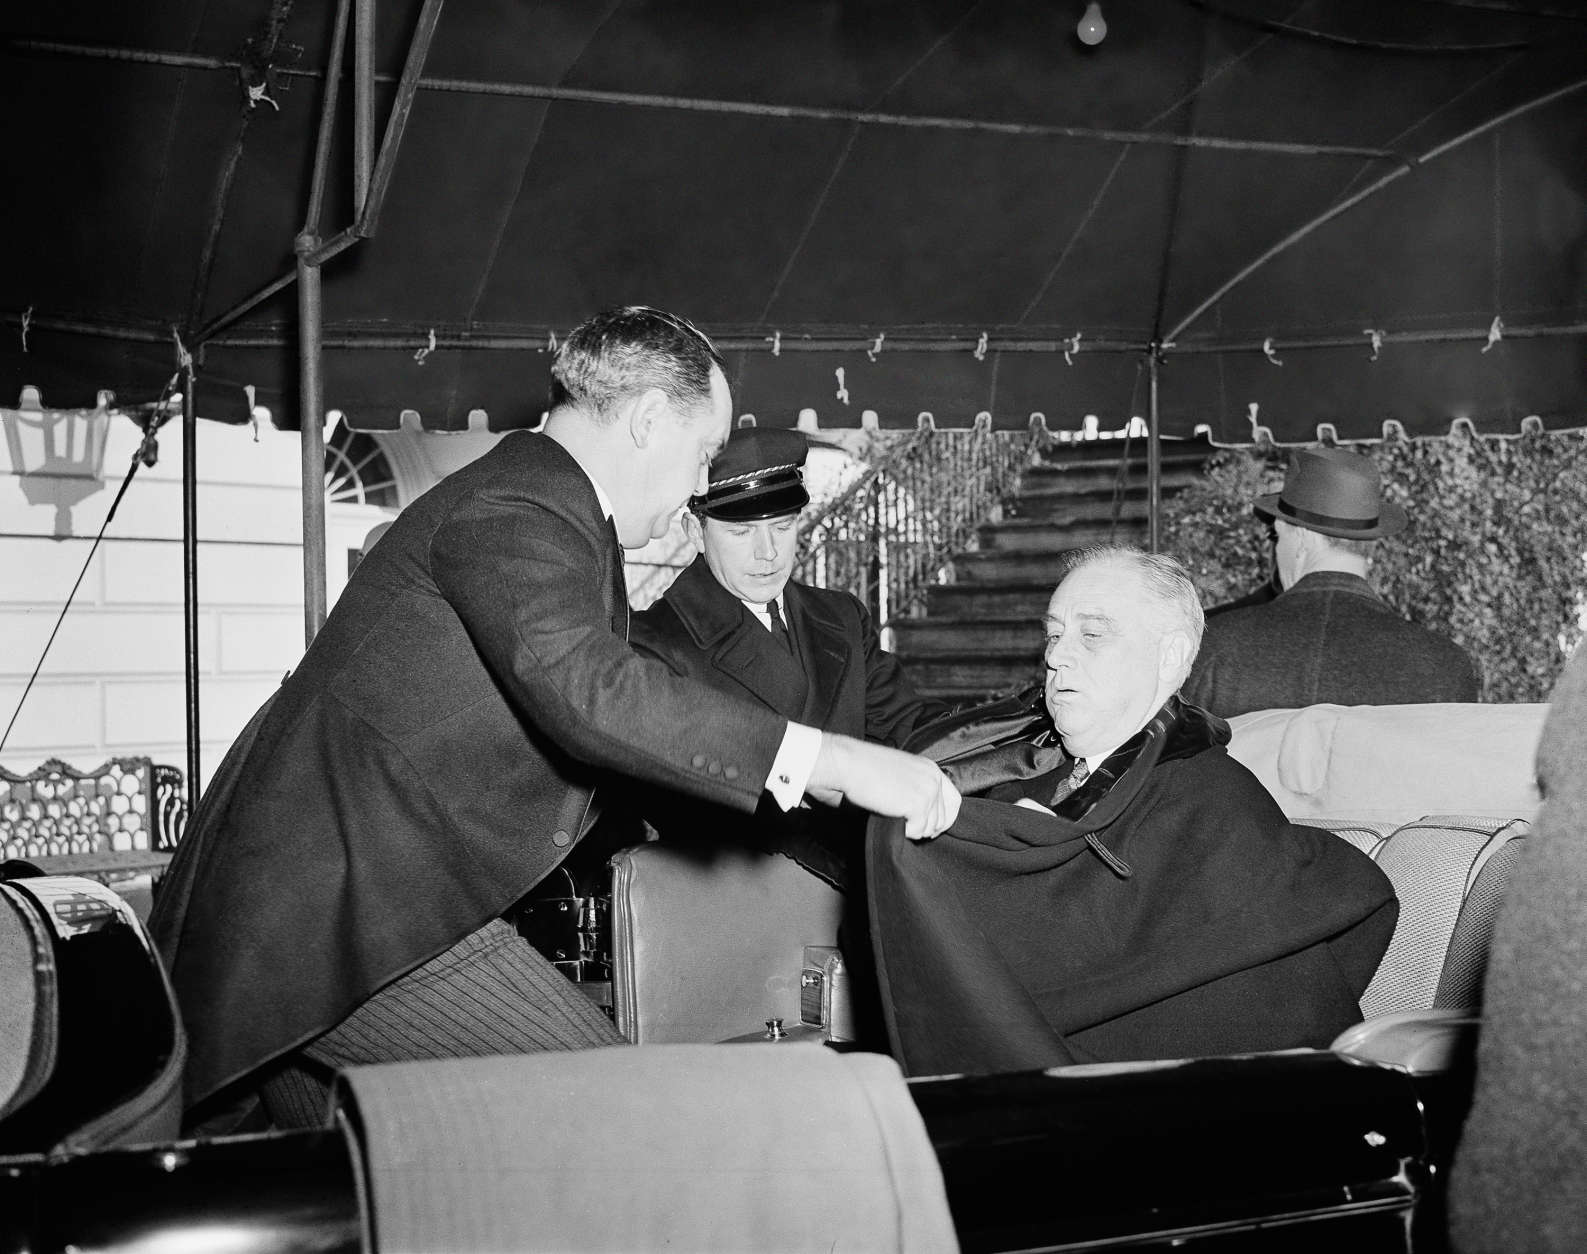 The temperature was near freezing so President Franklin D. Roosevelt was wrapped up well in his cloak by his bodyguard, Thomas Qualters, as the president left for church services in Washington, Jan. 20, 1941, before his third inauguration. (AP Photo)